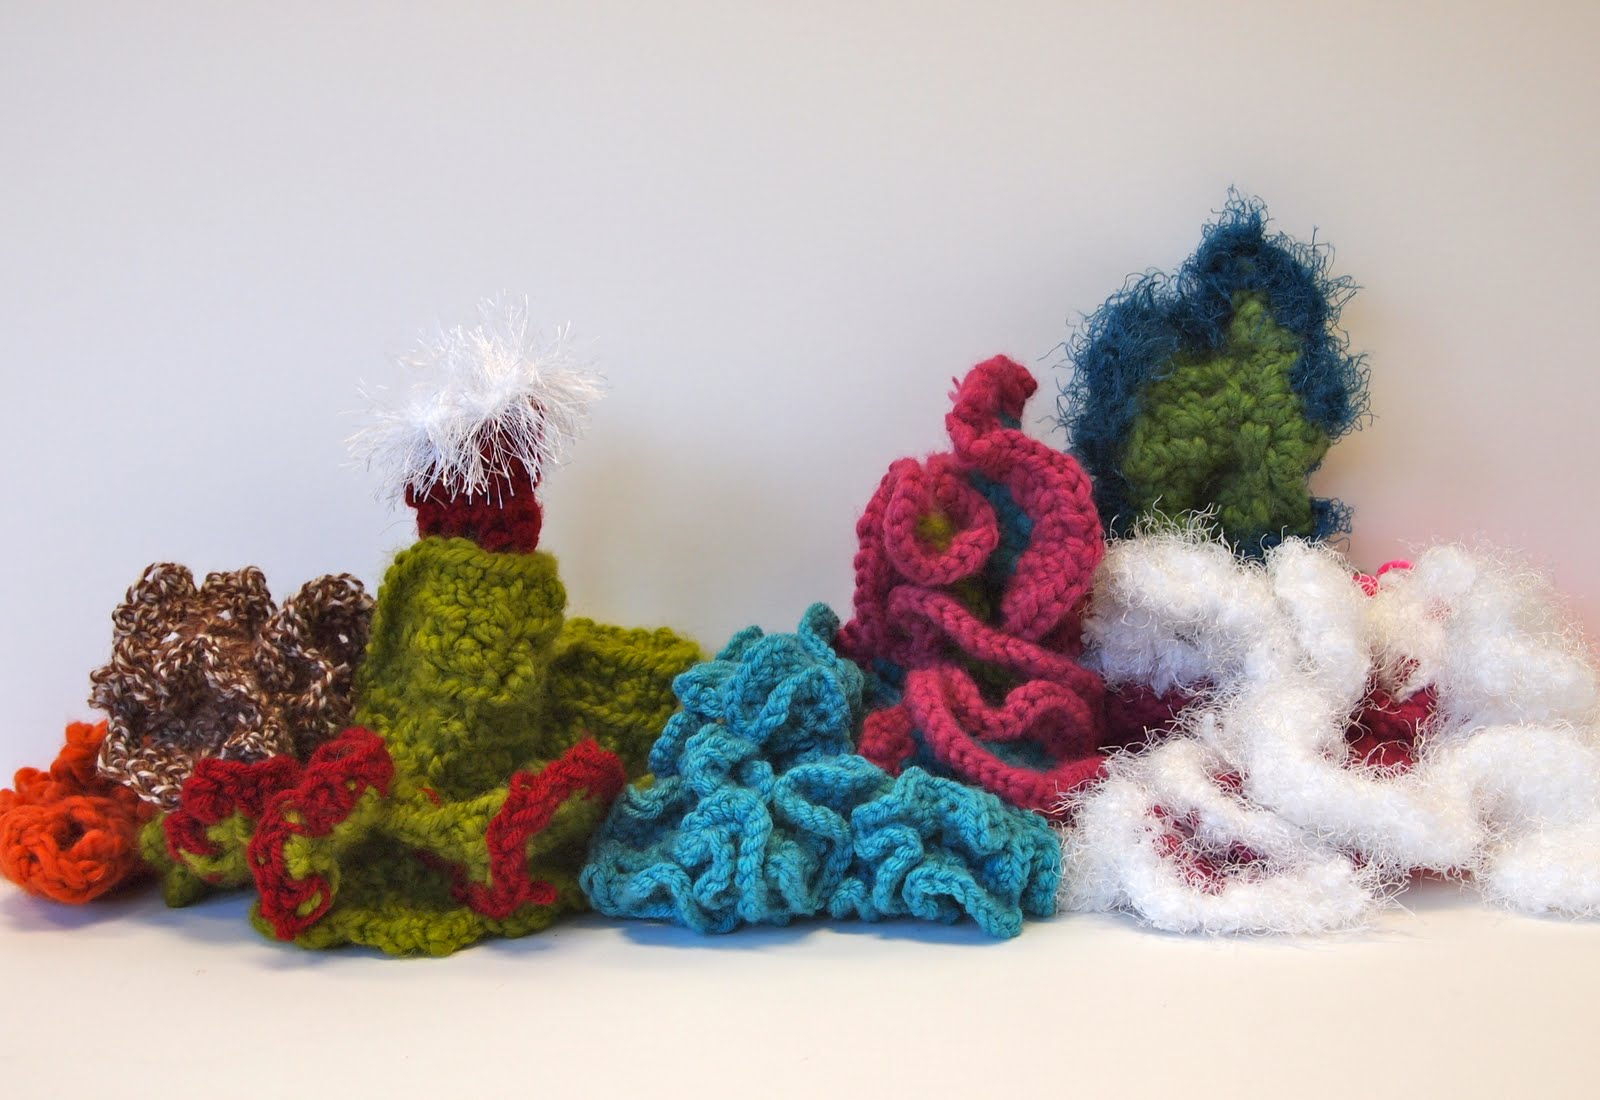 Crochet Coral Reef : new city arts: hyperbolic crochet coral reef project